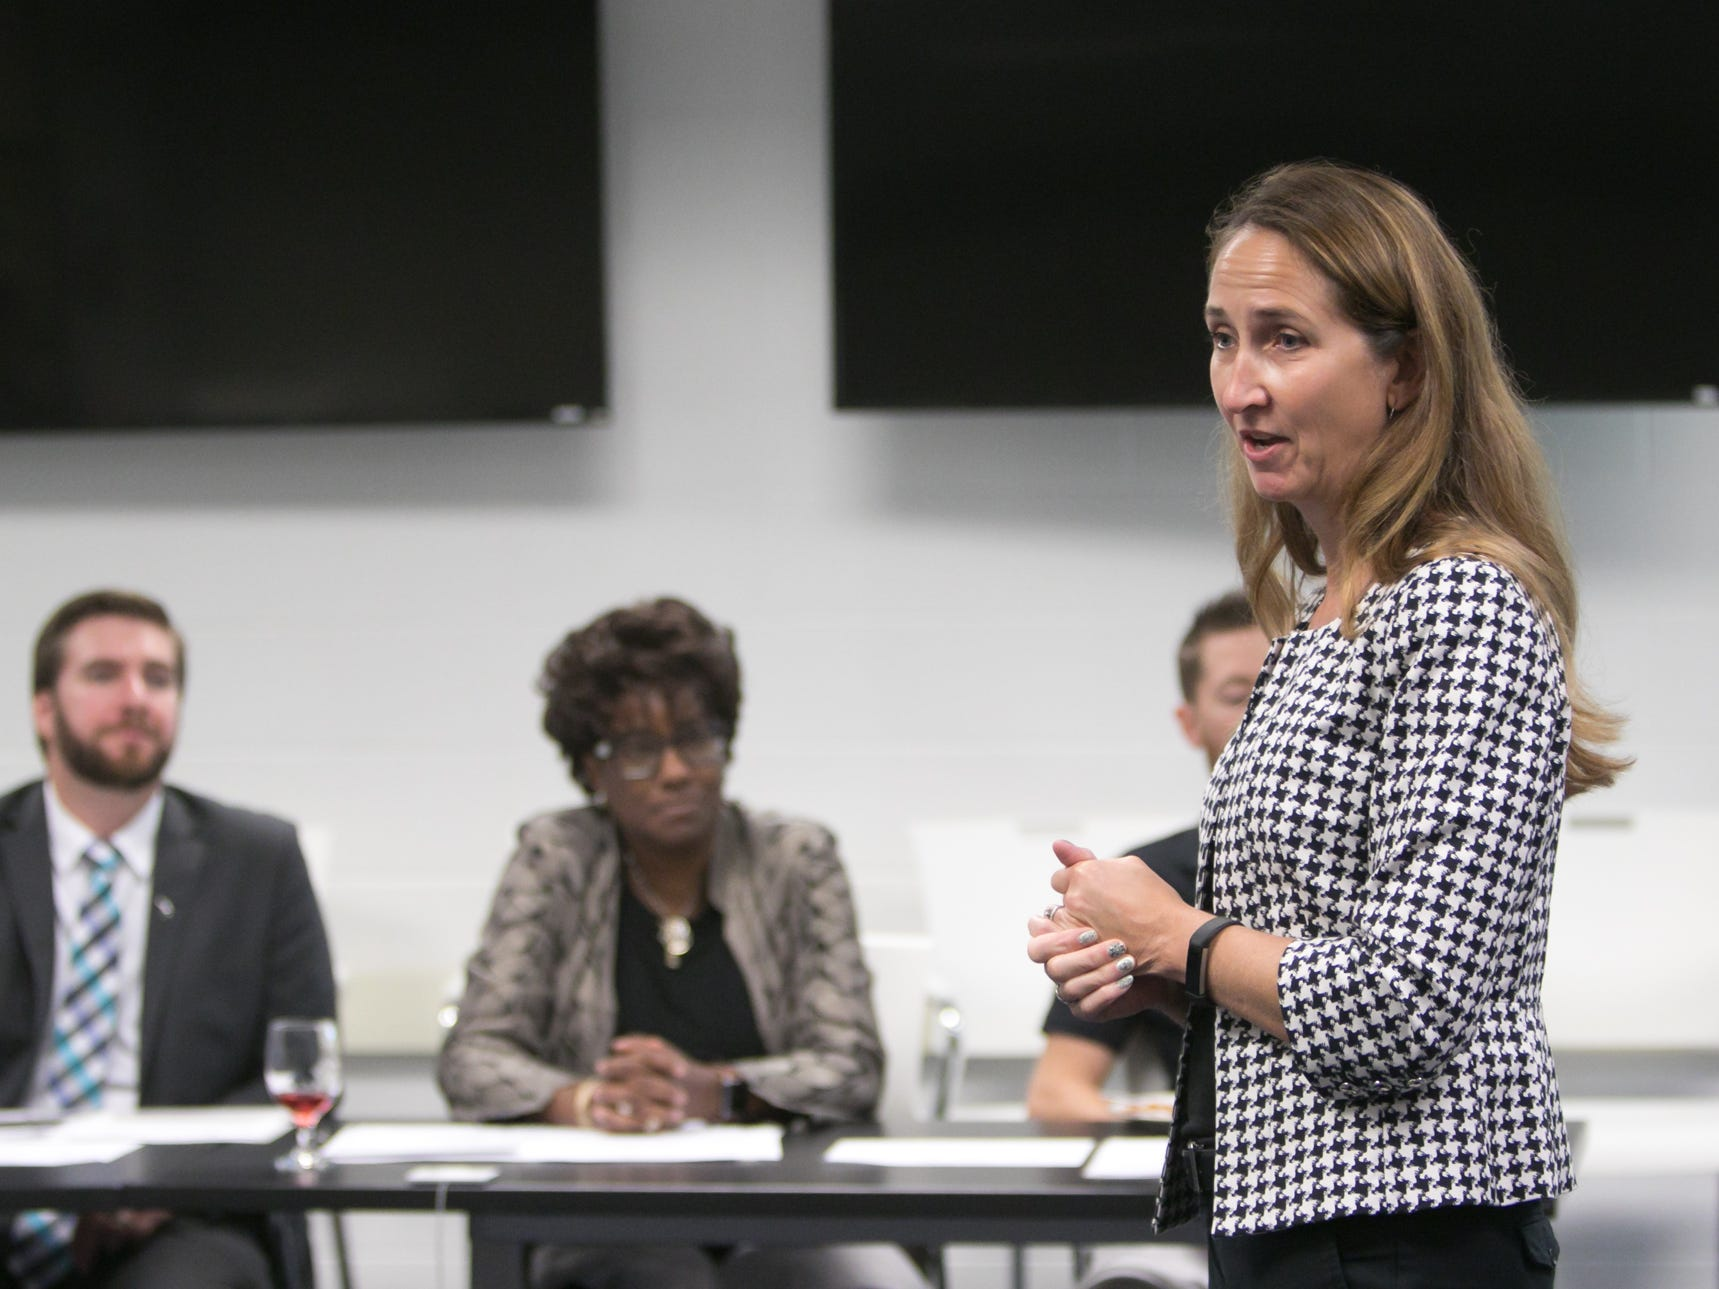 Michelle Radcliffe, executive director at LATEC, speaks at the tour for IBM executives at the Pinckney Cyber Training Institute Tuesday, Oct. 9, 2018.